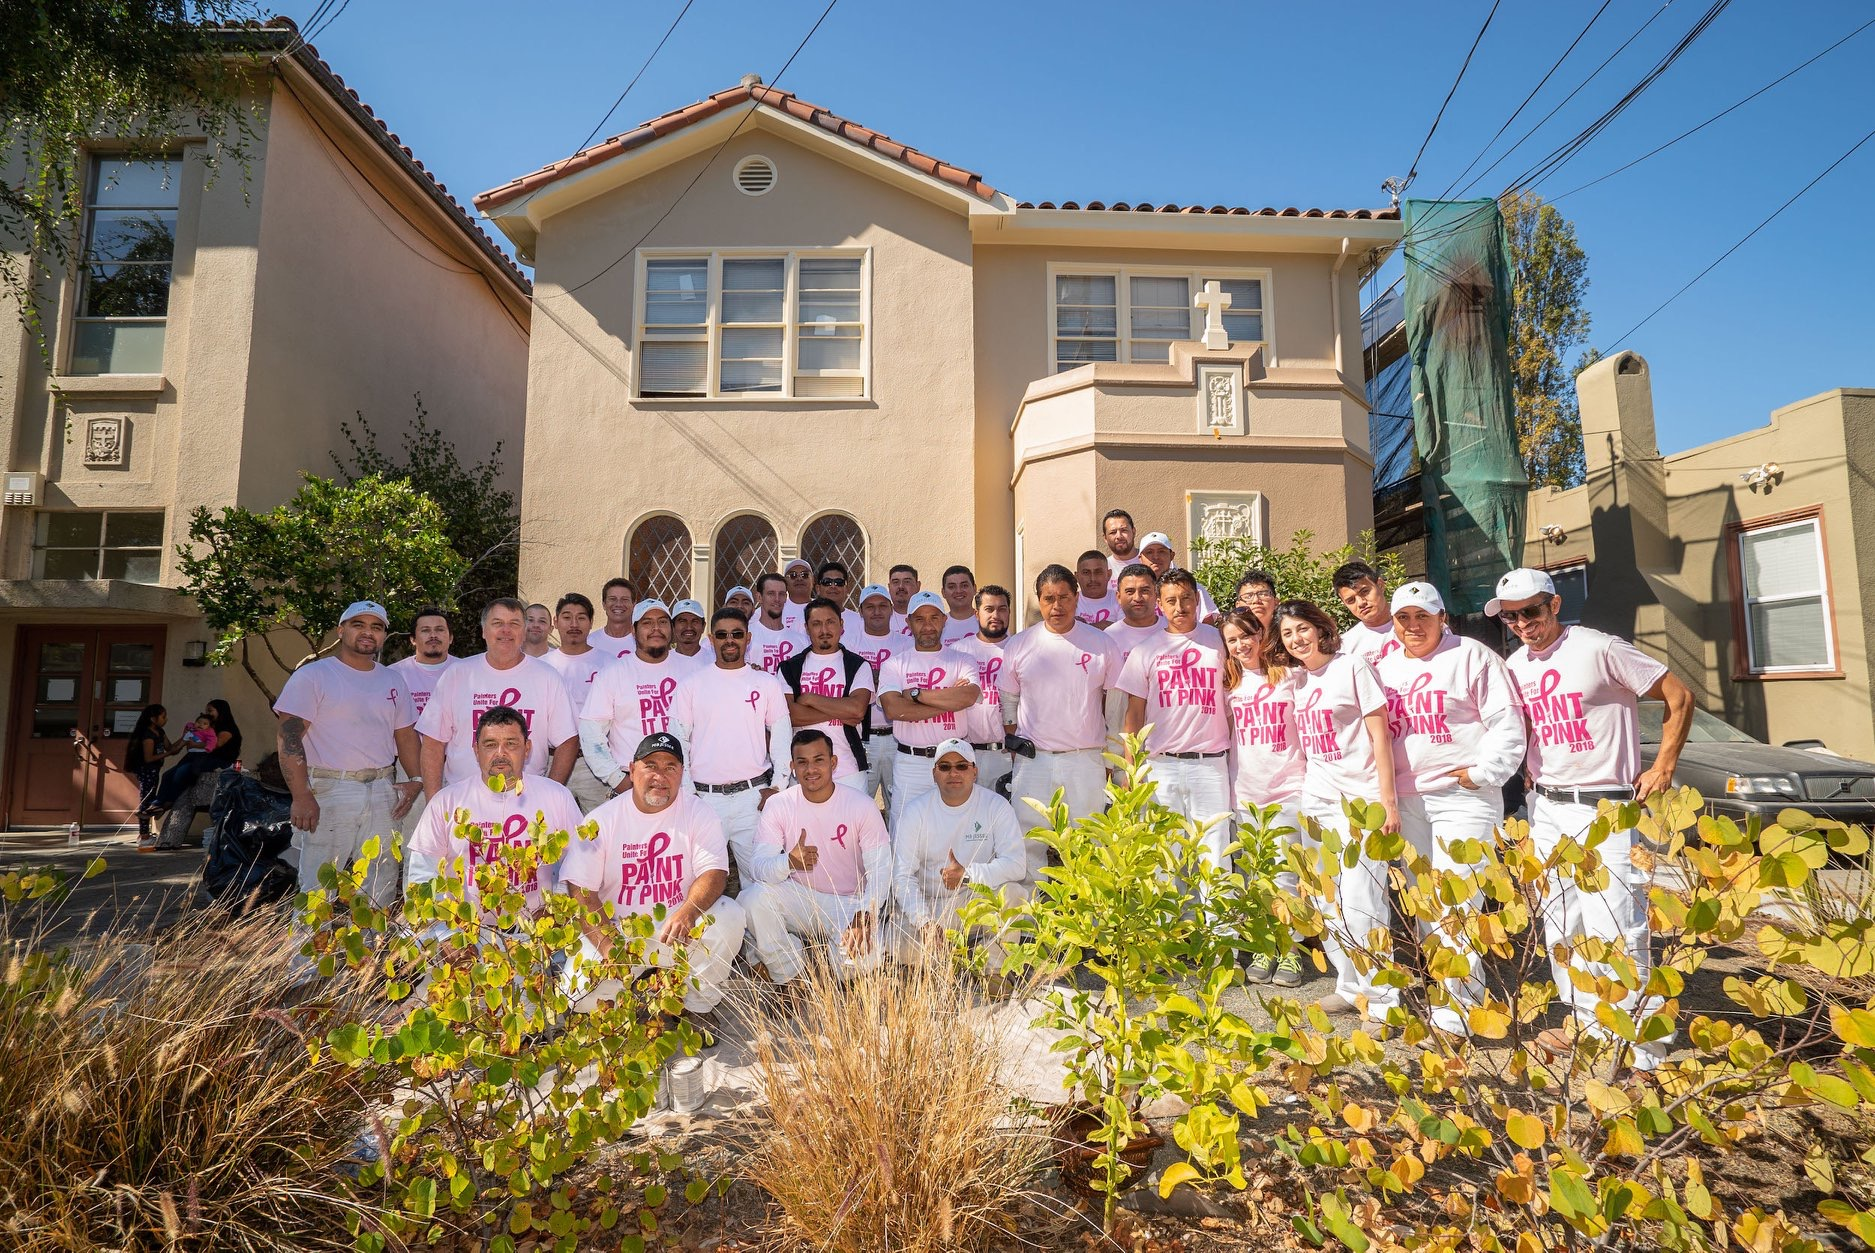 "The MB Jesse Professional Painters Team donated their amazing services to repaint the exterior of Oakland Elizabeth House this past October 2018 during their ""Paint it Pink"" Community Outreach for Breast Cancer Awareness month!"